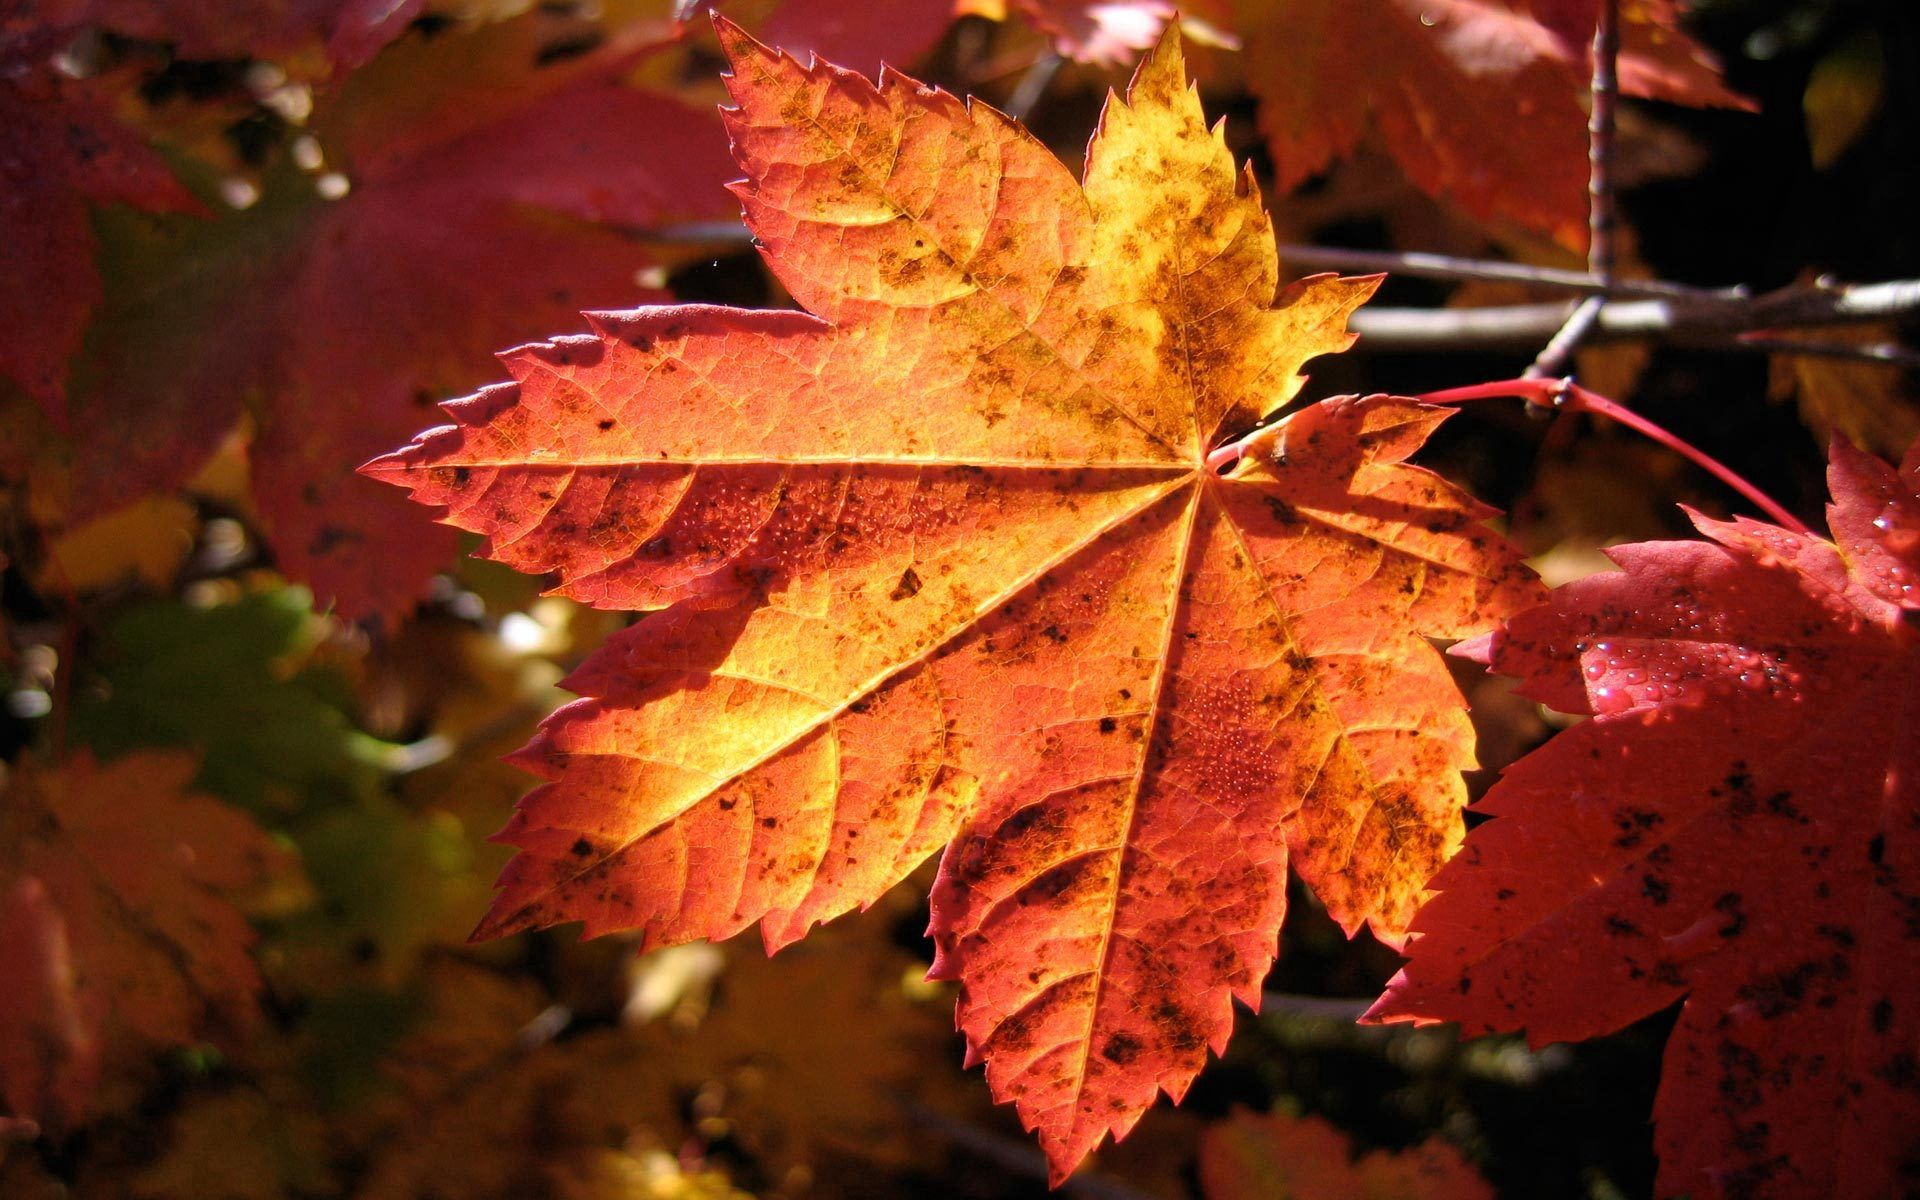 69711 download wallpaper Macro, Sheet, Leaf, Maple, Autumn, Dry screensavers and pictures for free